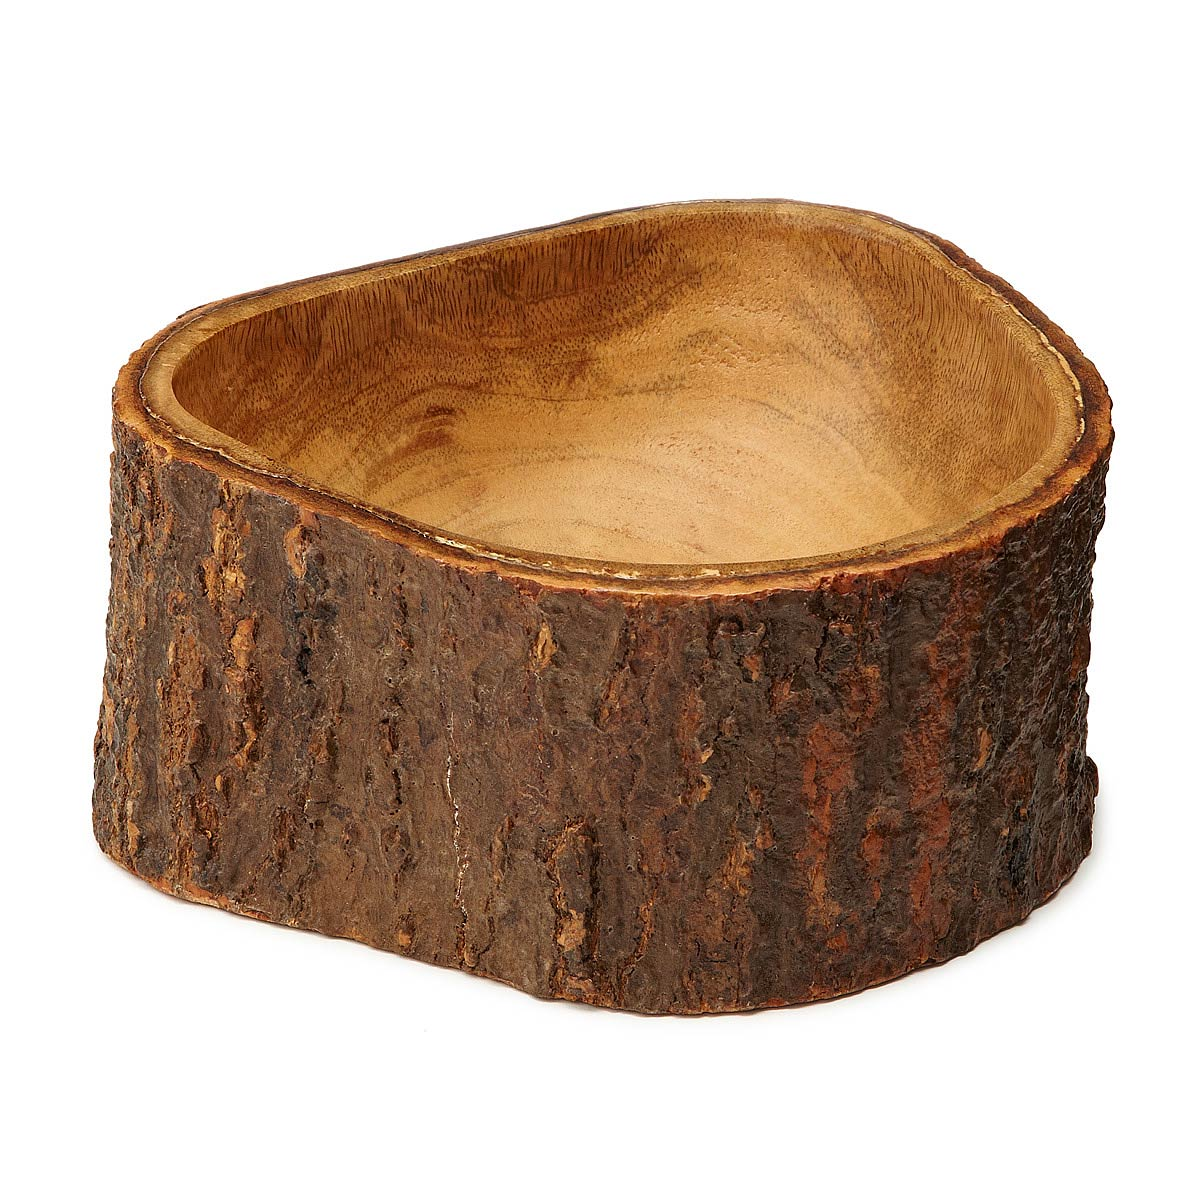 Very best Rustic Mango Wood Serving Bowl | acacia tree, home | UncommonGoods OS84